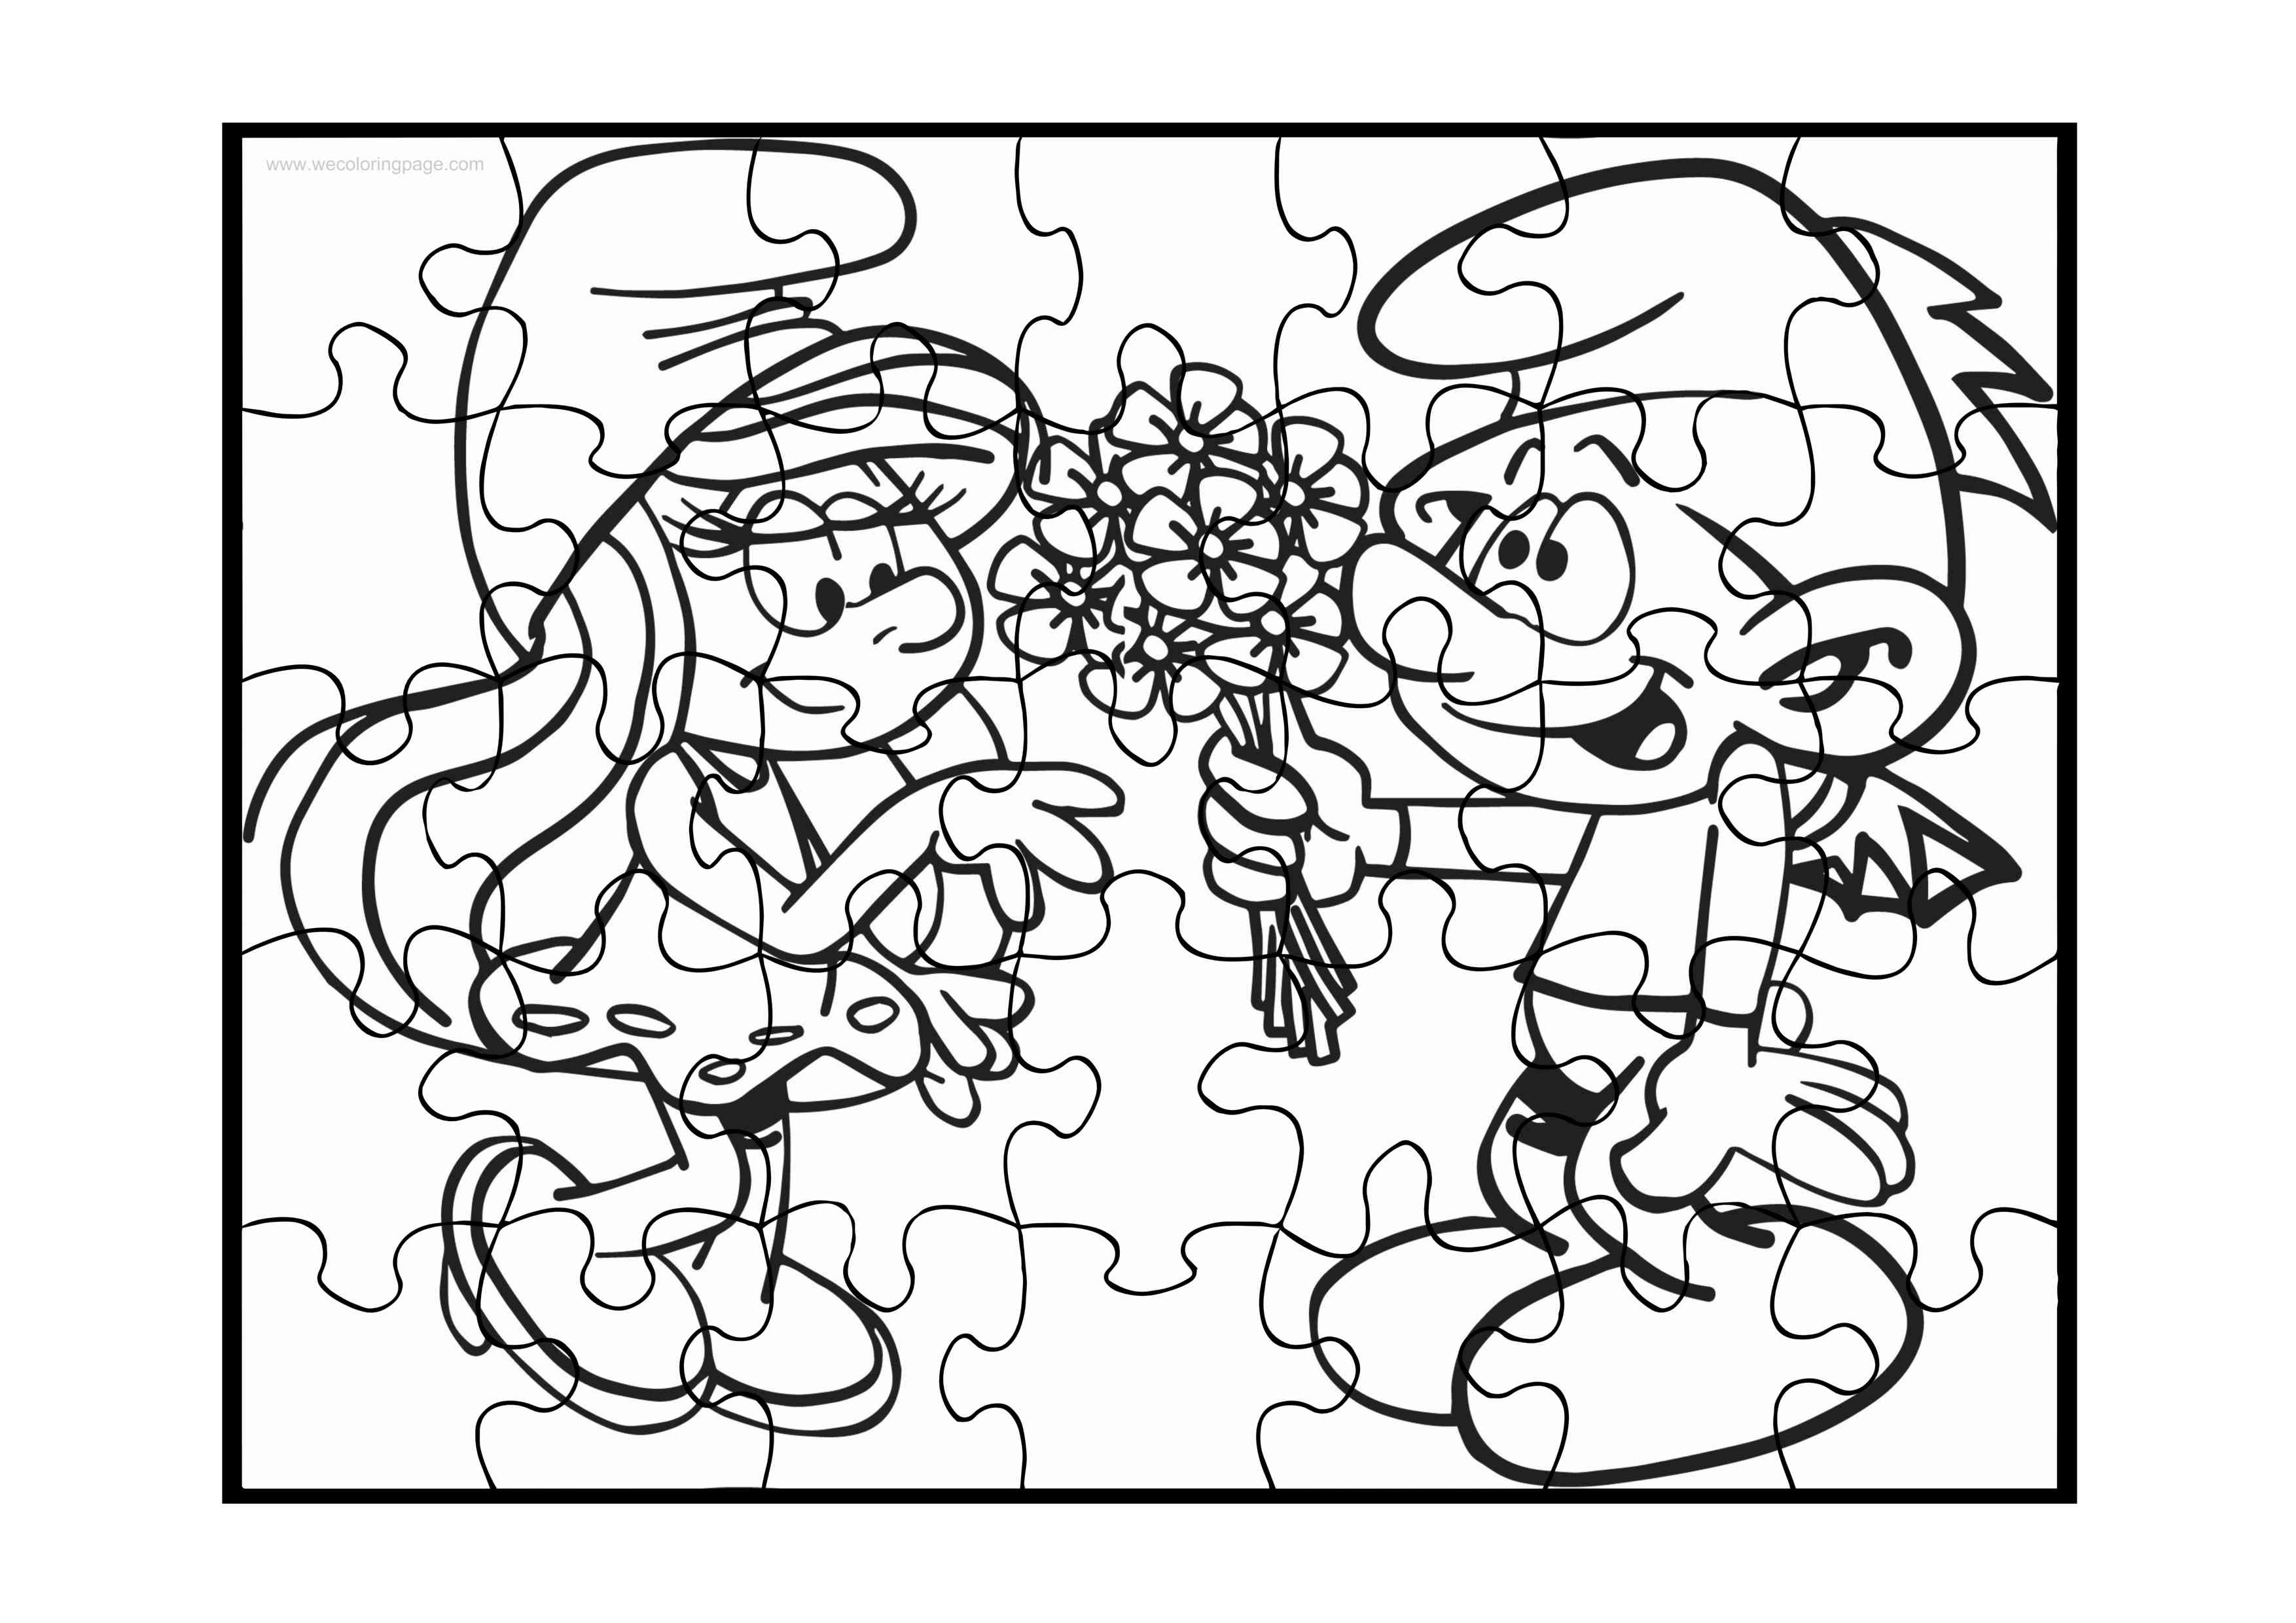 Smurf Puzzle Coloring Page Wecoloringpage Com